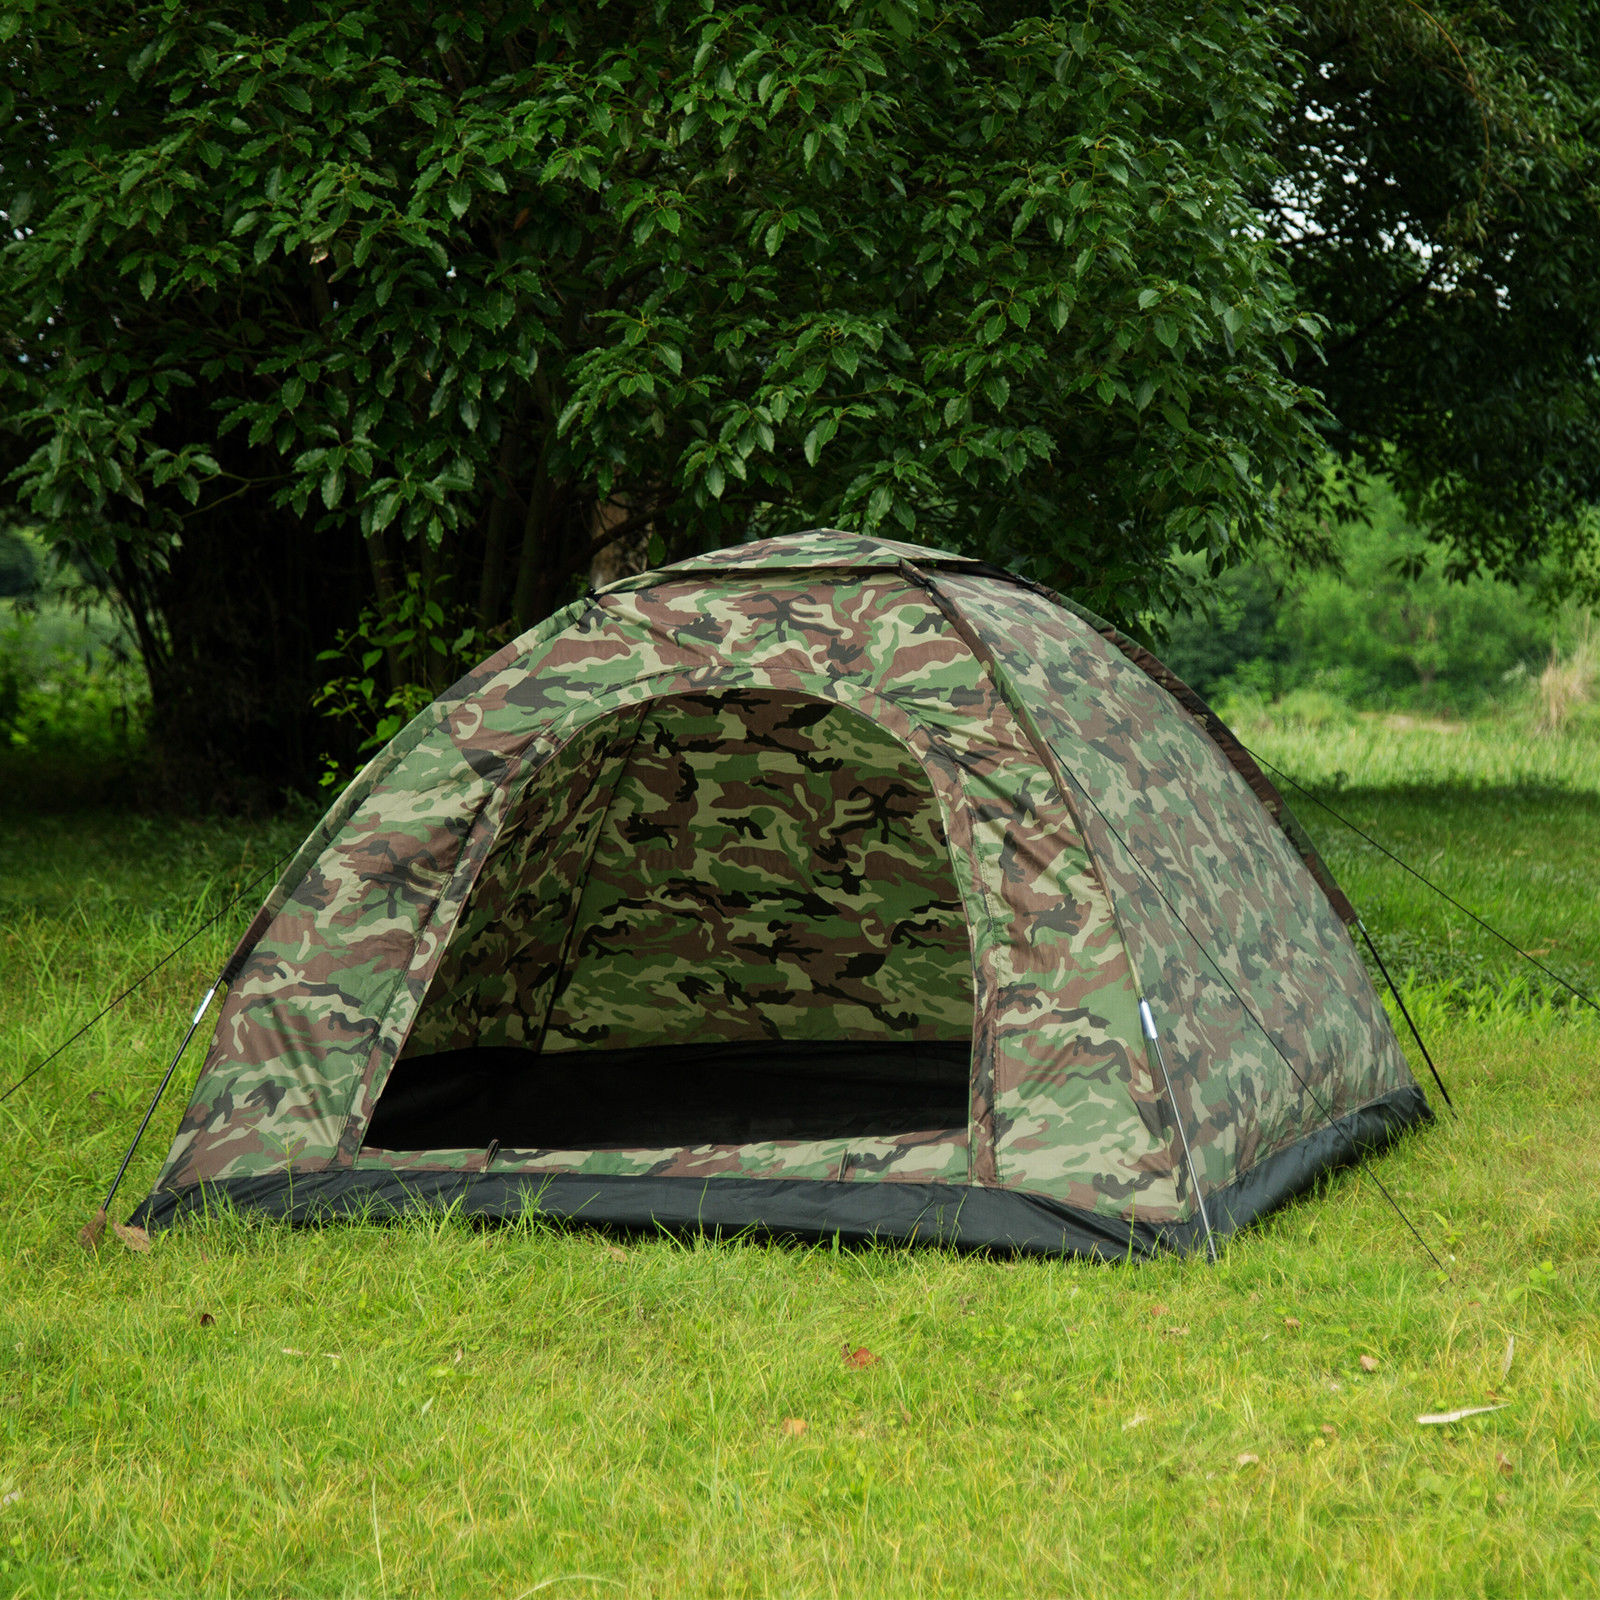 17ee058390 3-4 Person Outdoor Camping Waterproof 4 Season Family Tent Camouflage Hiking